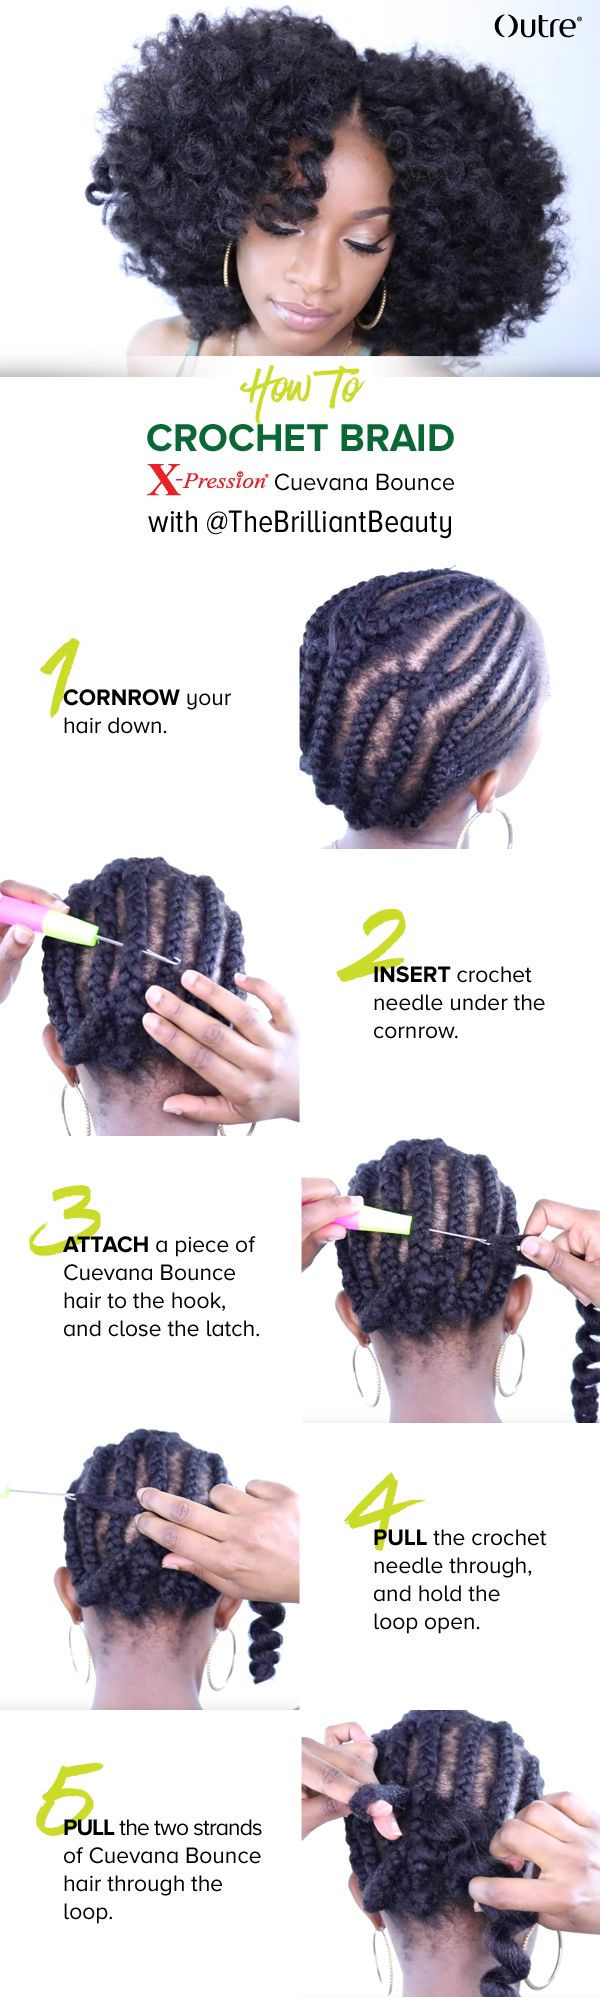 Best 25 crochet weave hairstyles ideas on pinterest crotchet best 25 crochet weave hairstyles ideas on pinterest crotchet braids curly crochet hair styles and curly crochet braids pmusecretfo Image collections